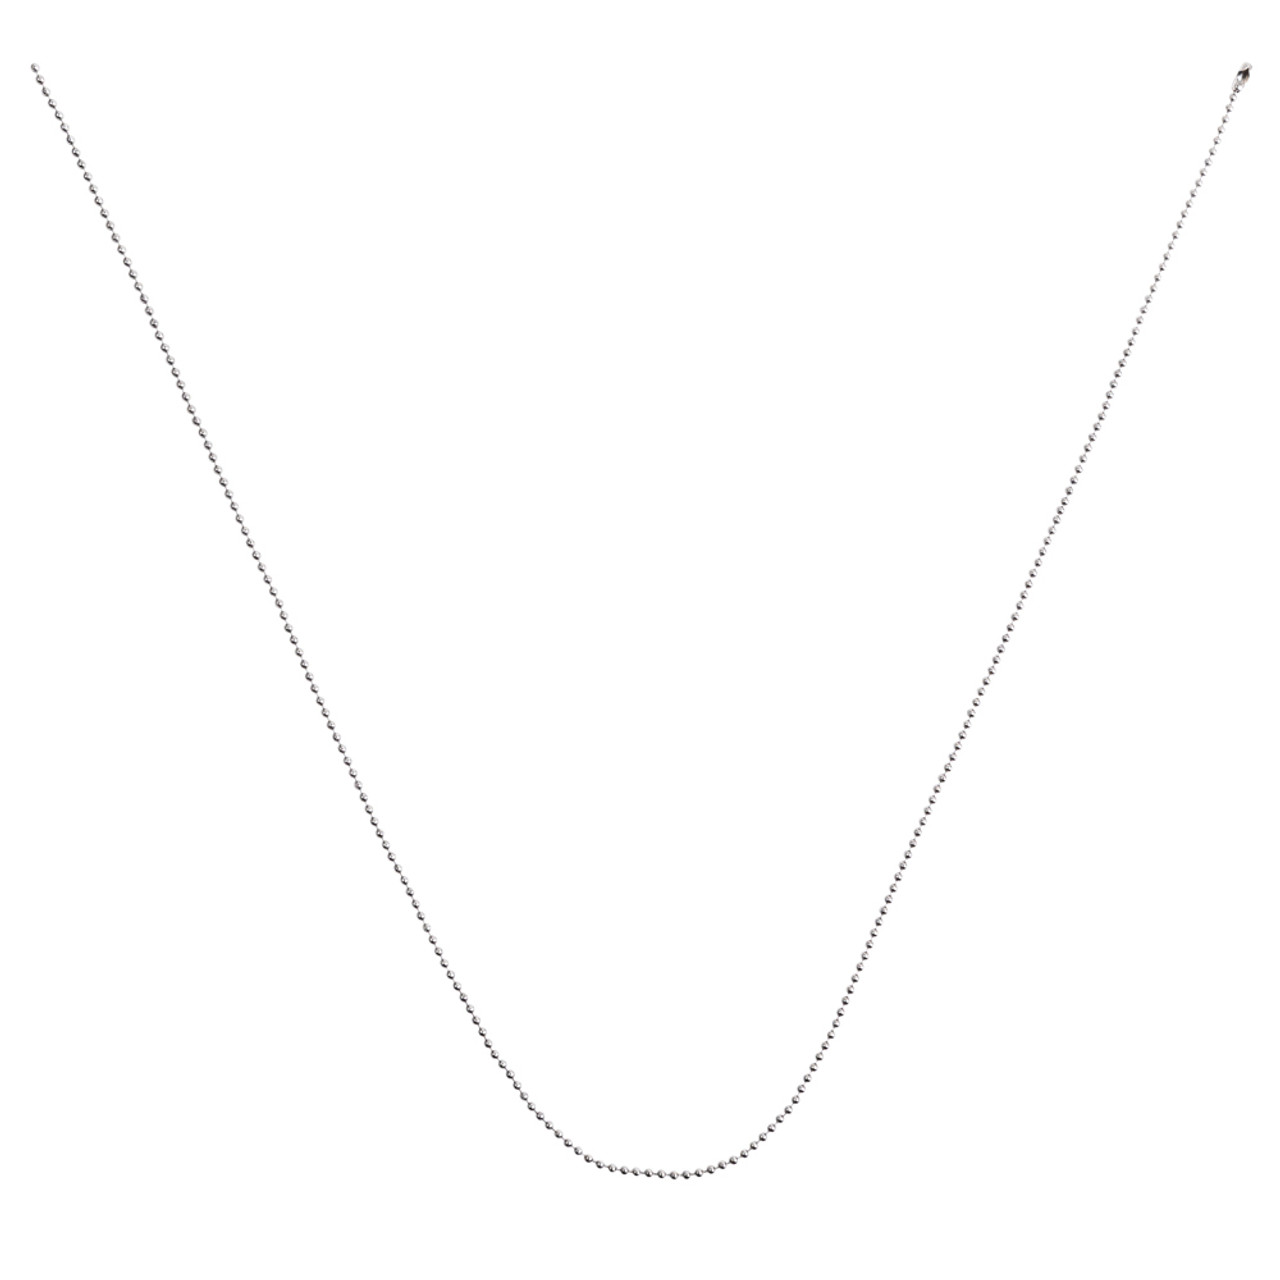 Unclasped 30 inch stainless steel bead chain neck chain.